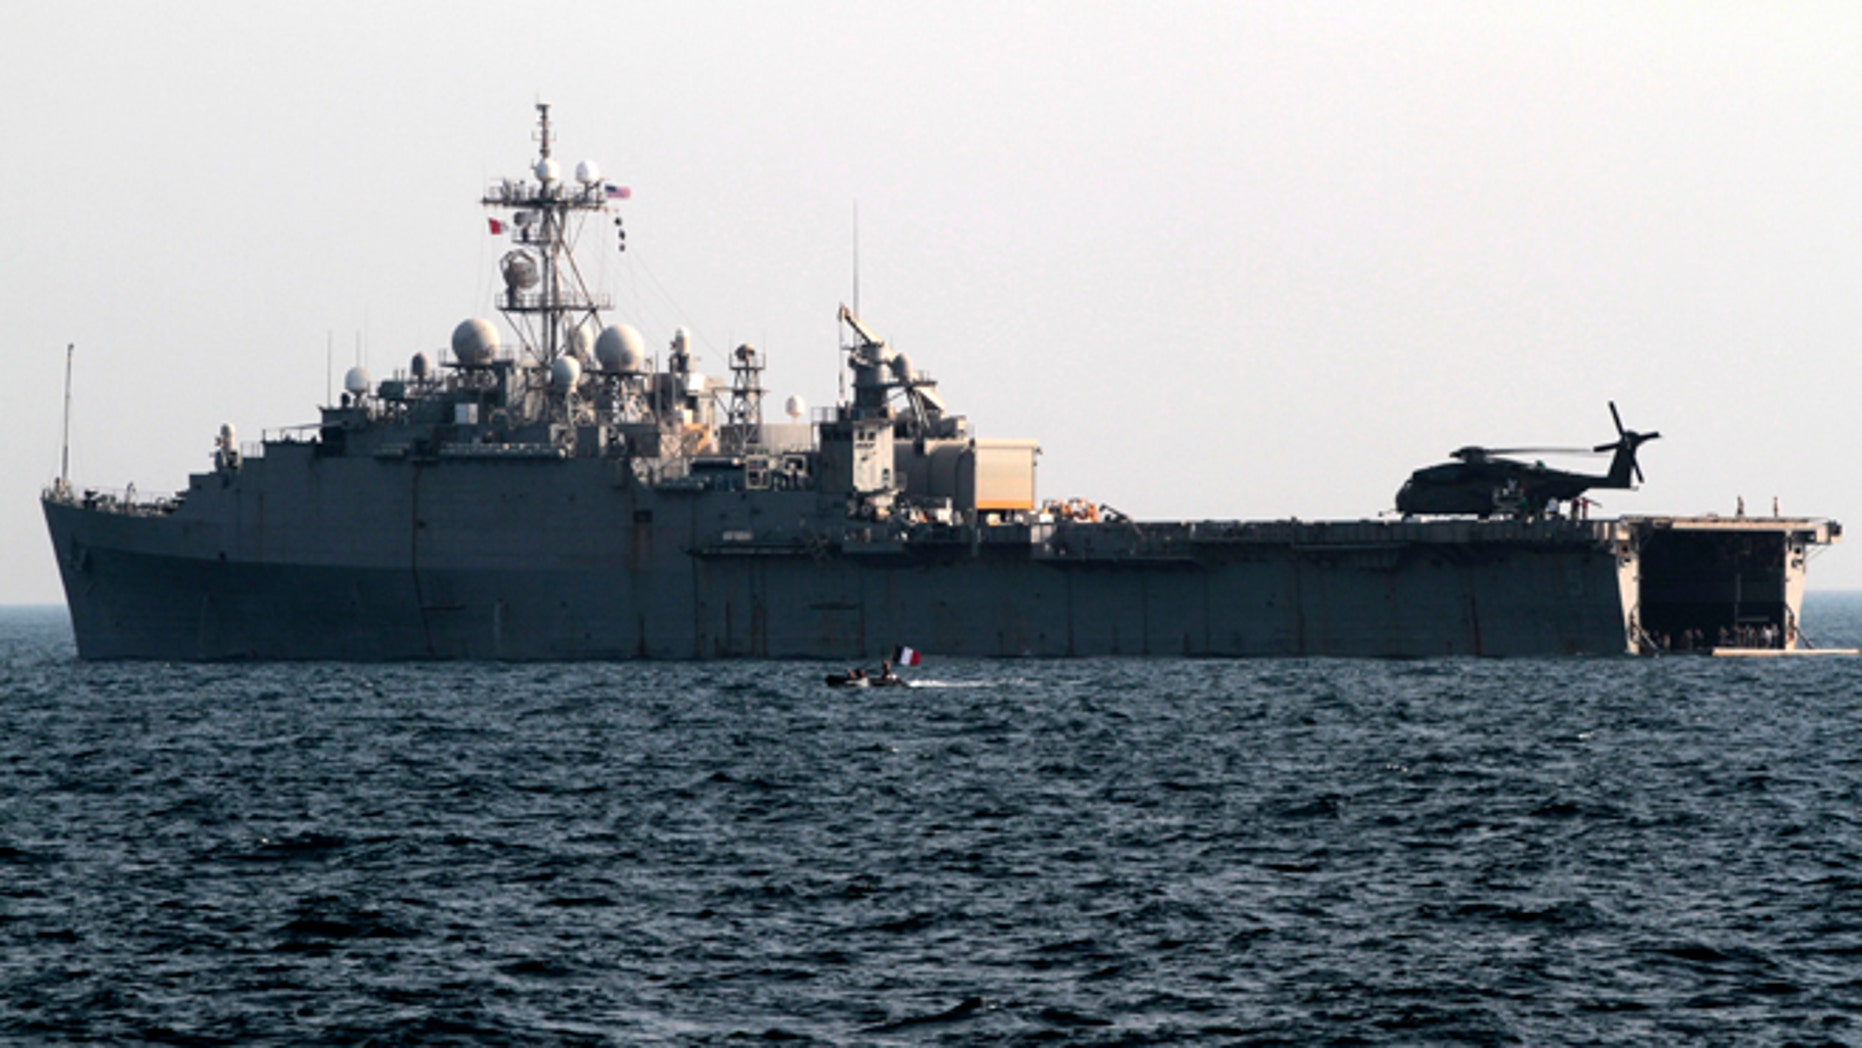 Sept. 21, 2012: A French speedboat deployed from the back of the USS Ponce in the Persian Gulf passes by the U.S. Navy's floating base used to support mine countermeasure operations.